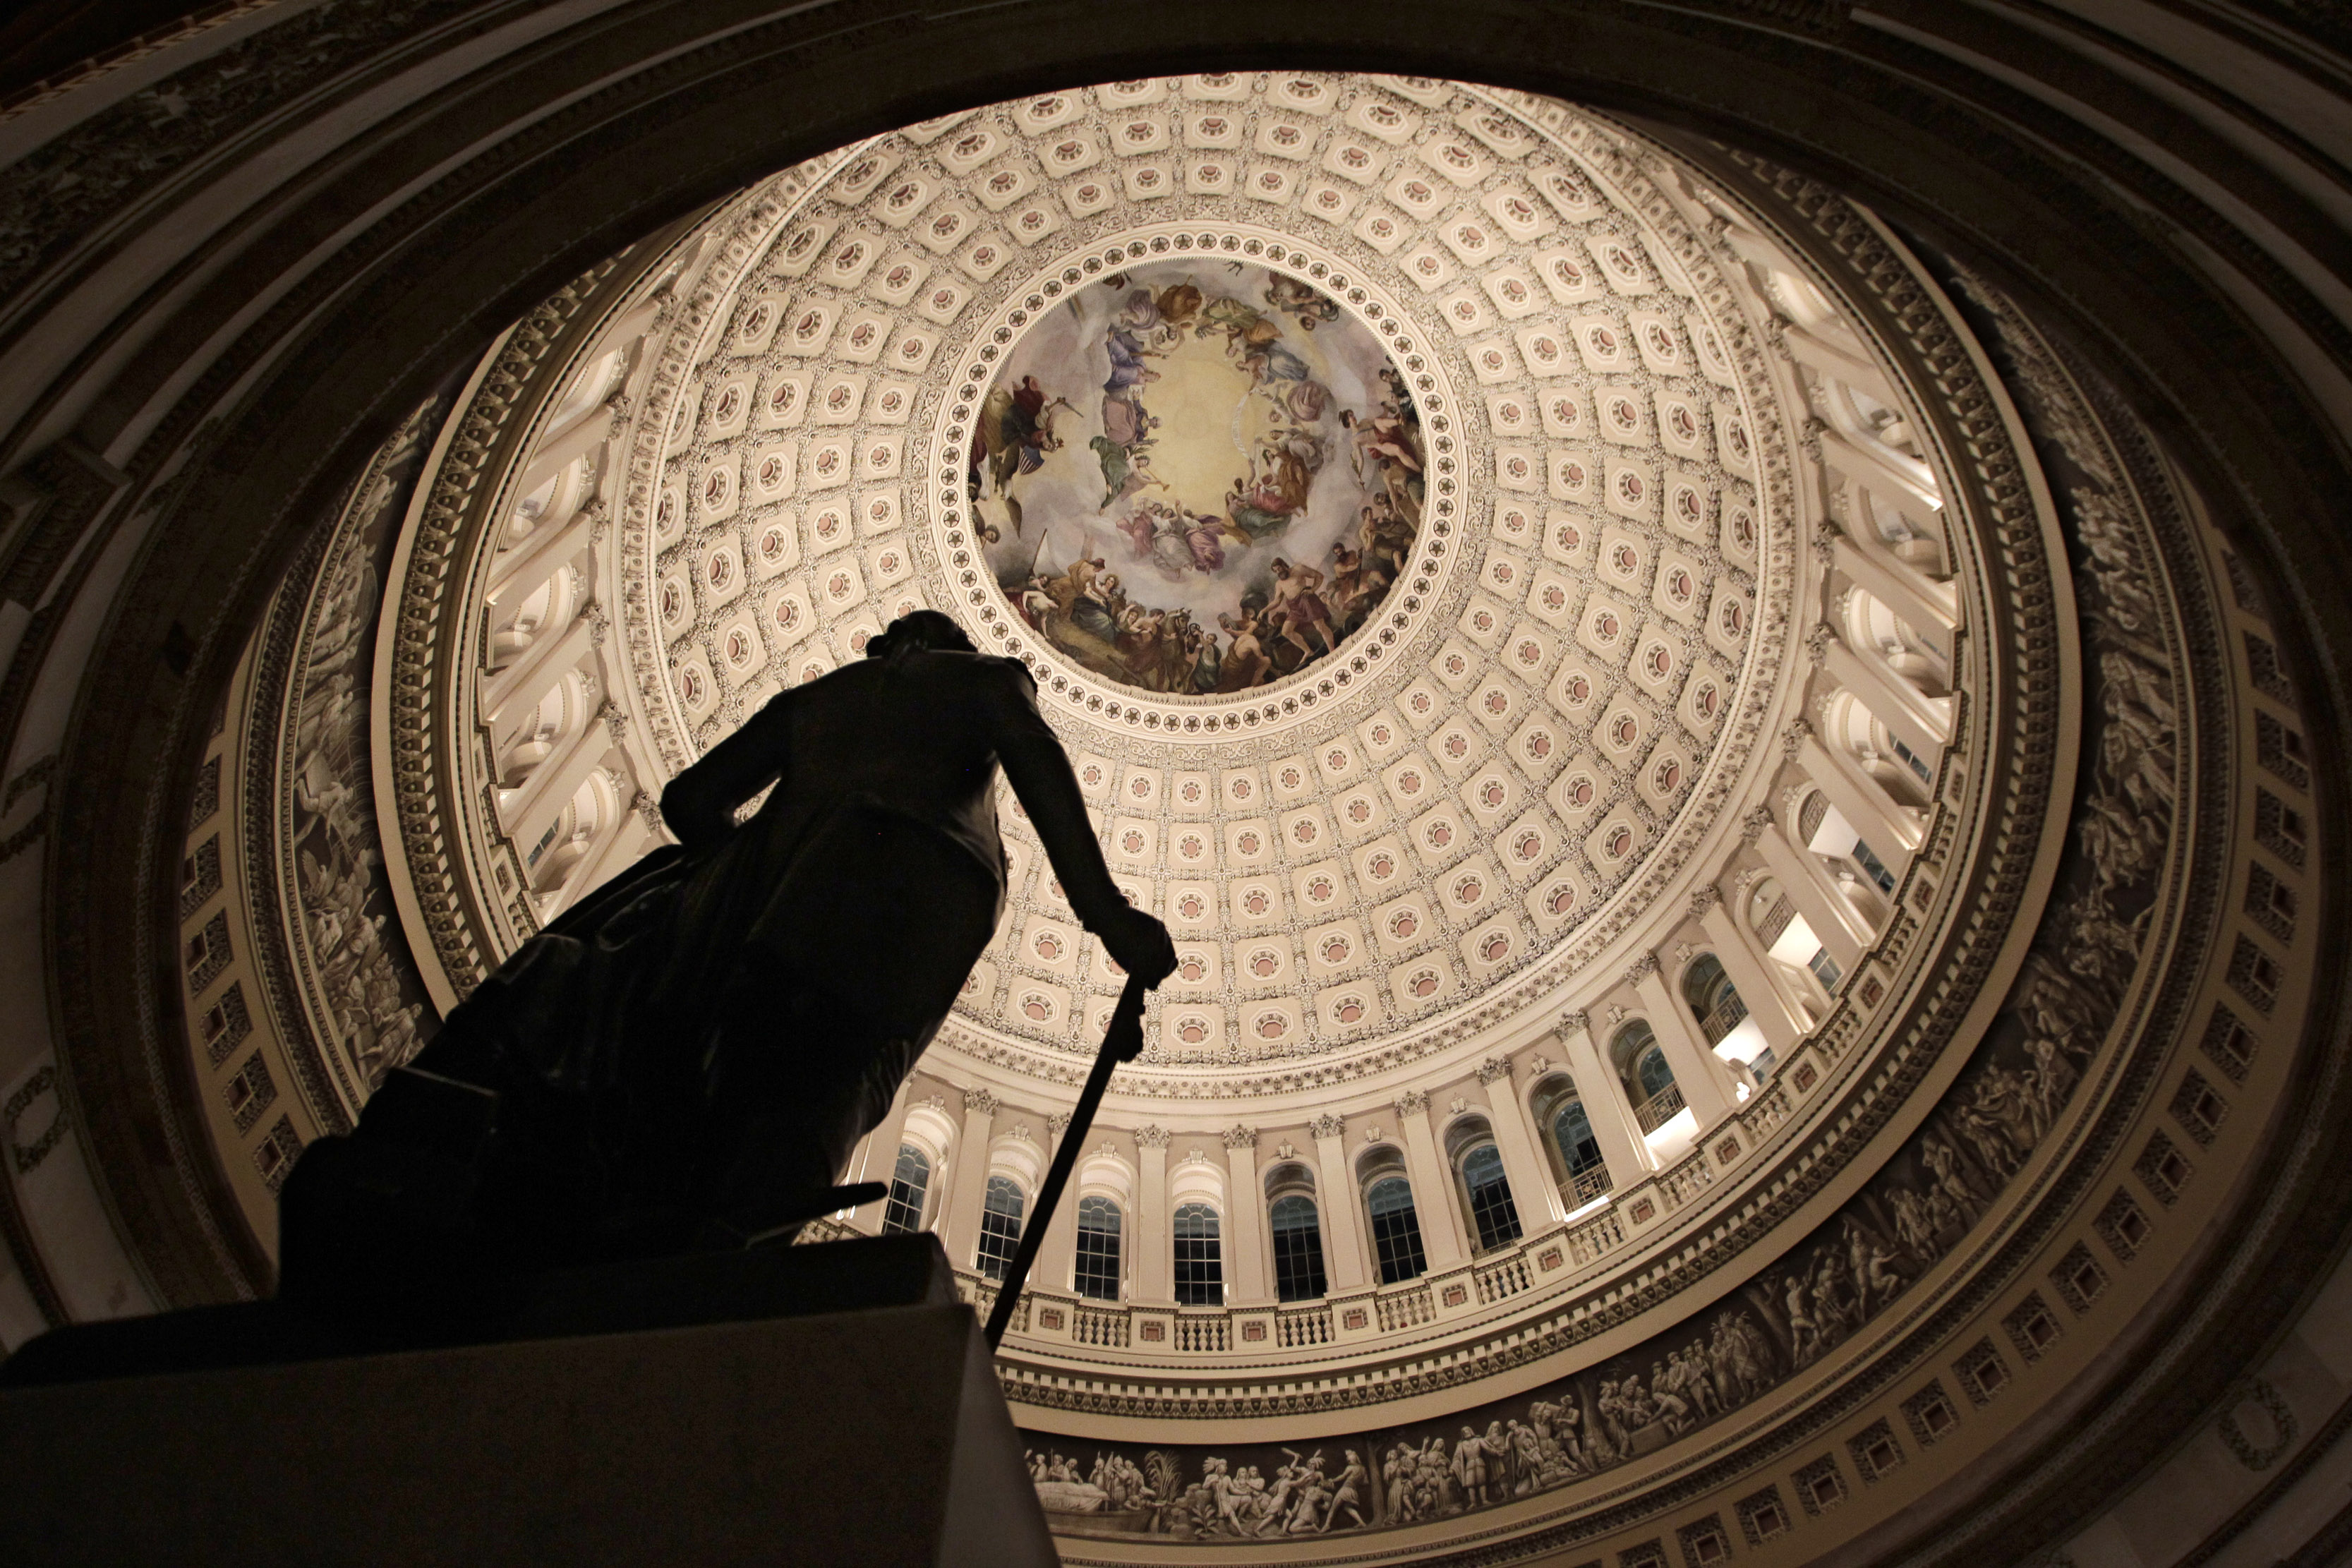 The rotunda of the U.S. Capitol.